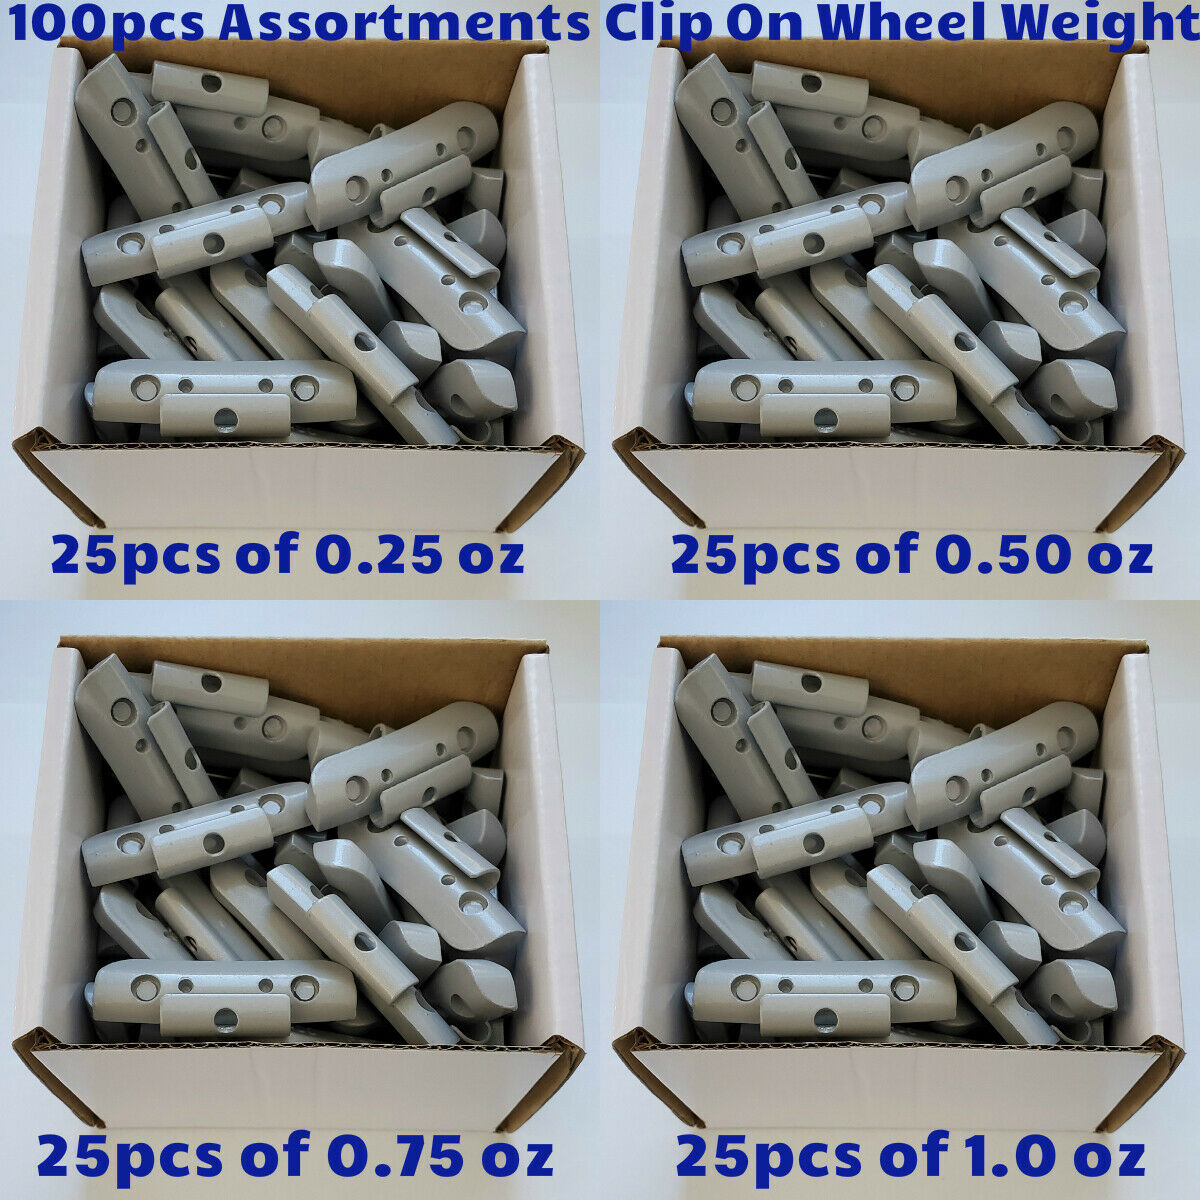 100 Pcs ASSORTMENT OCTOPUS Clip On Wheel Weight Balance P STYLE .25 .50 .75 1oz